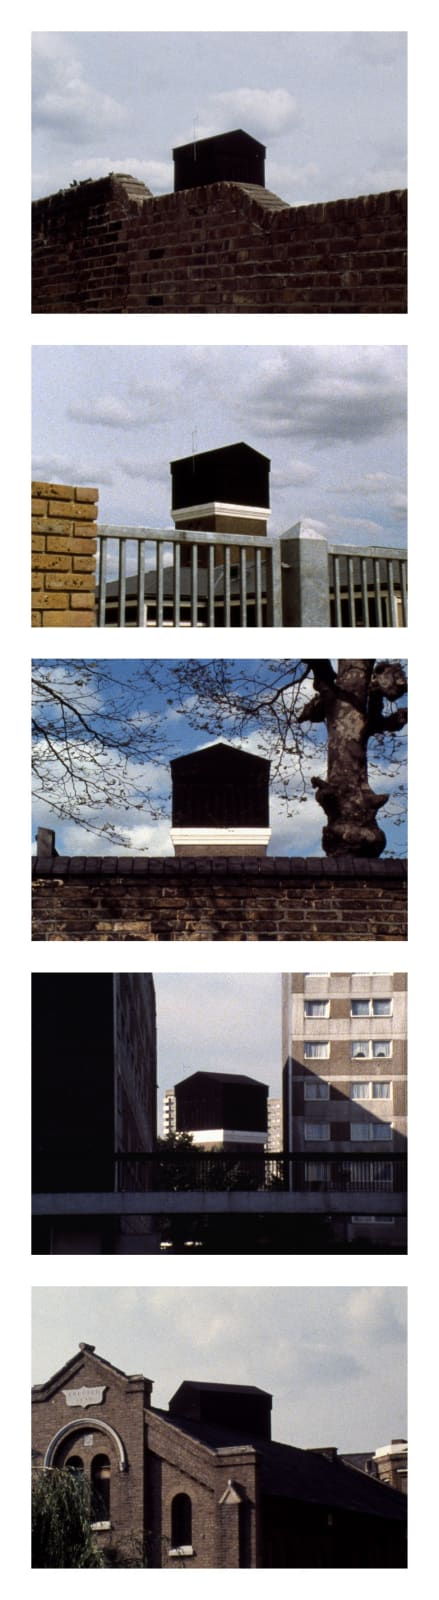 John Smith 5 frames from The Black Tower, 1985-7, #1